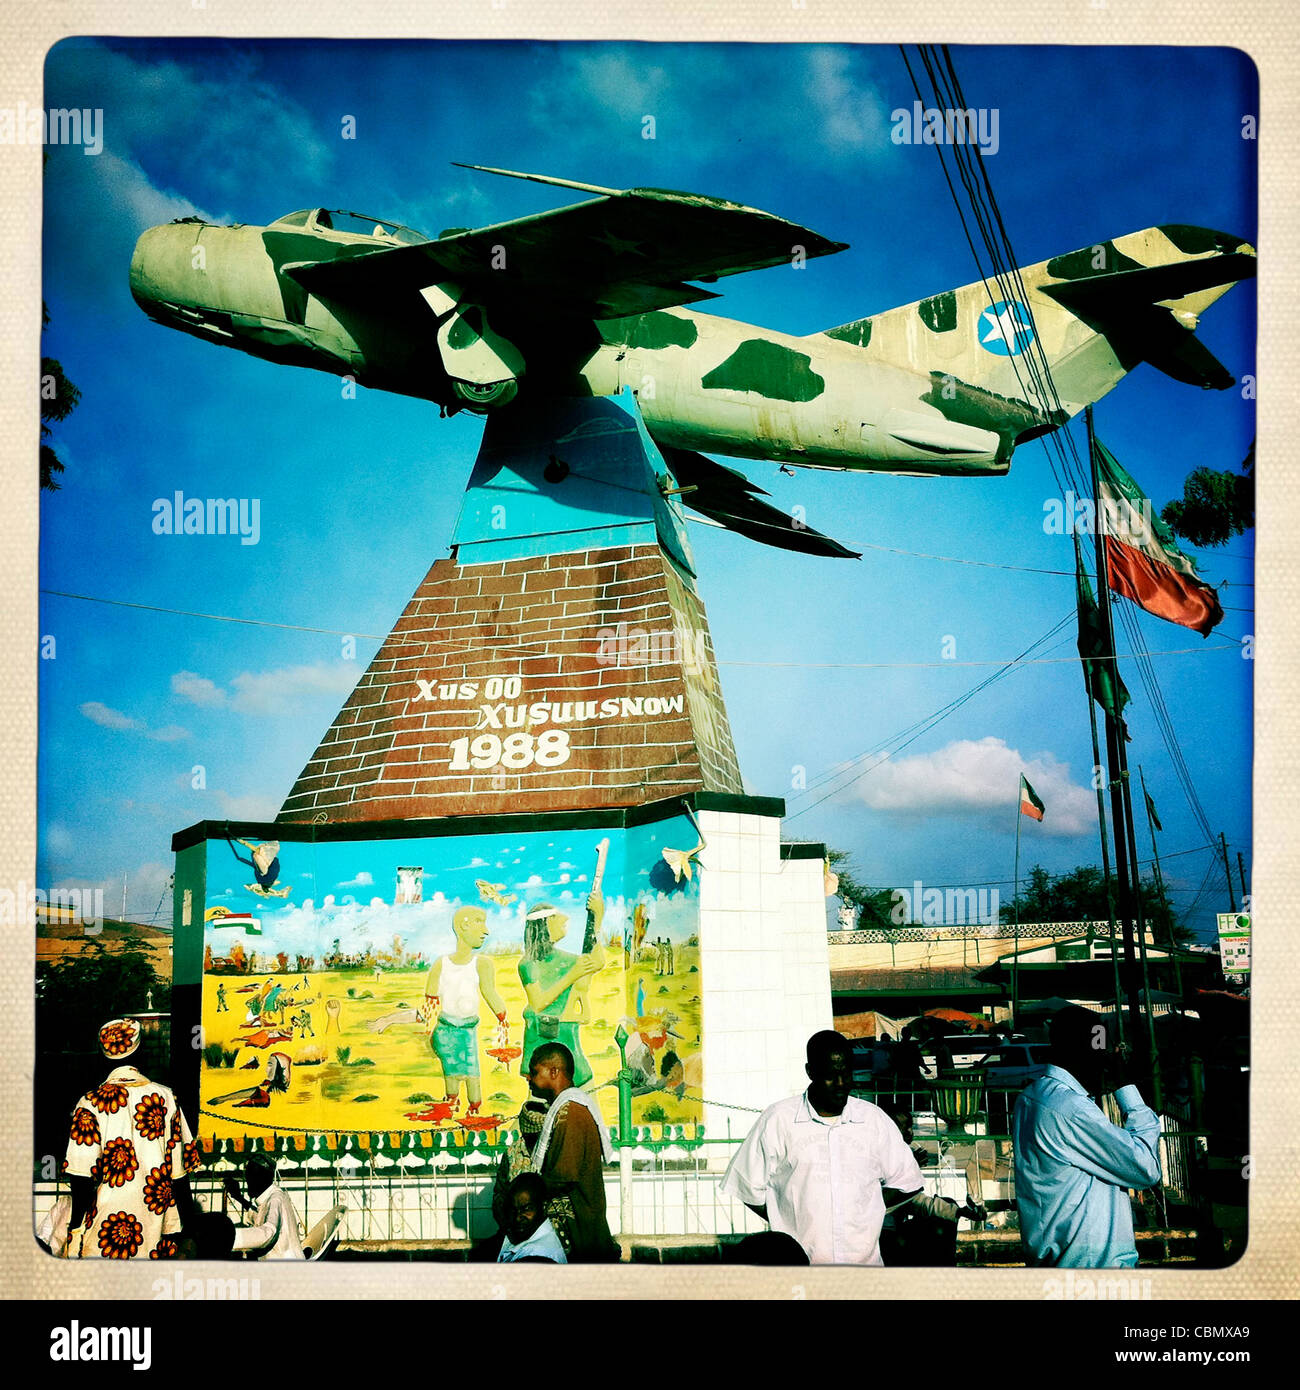 Fighter Jet Plane At The Entrance Of War Memorial Museum In Hargeisa Somaliland - Stock Image